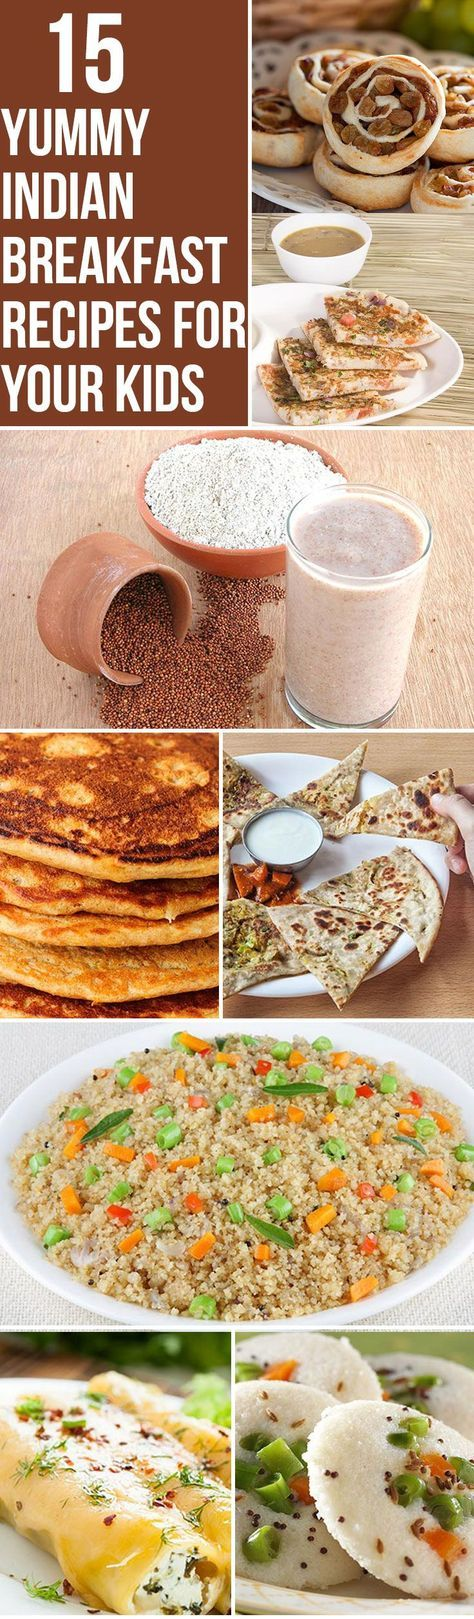 Top 15 Yummy Indian Breakfast Recipes For Your Kids